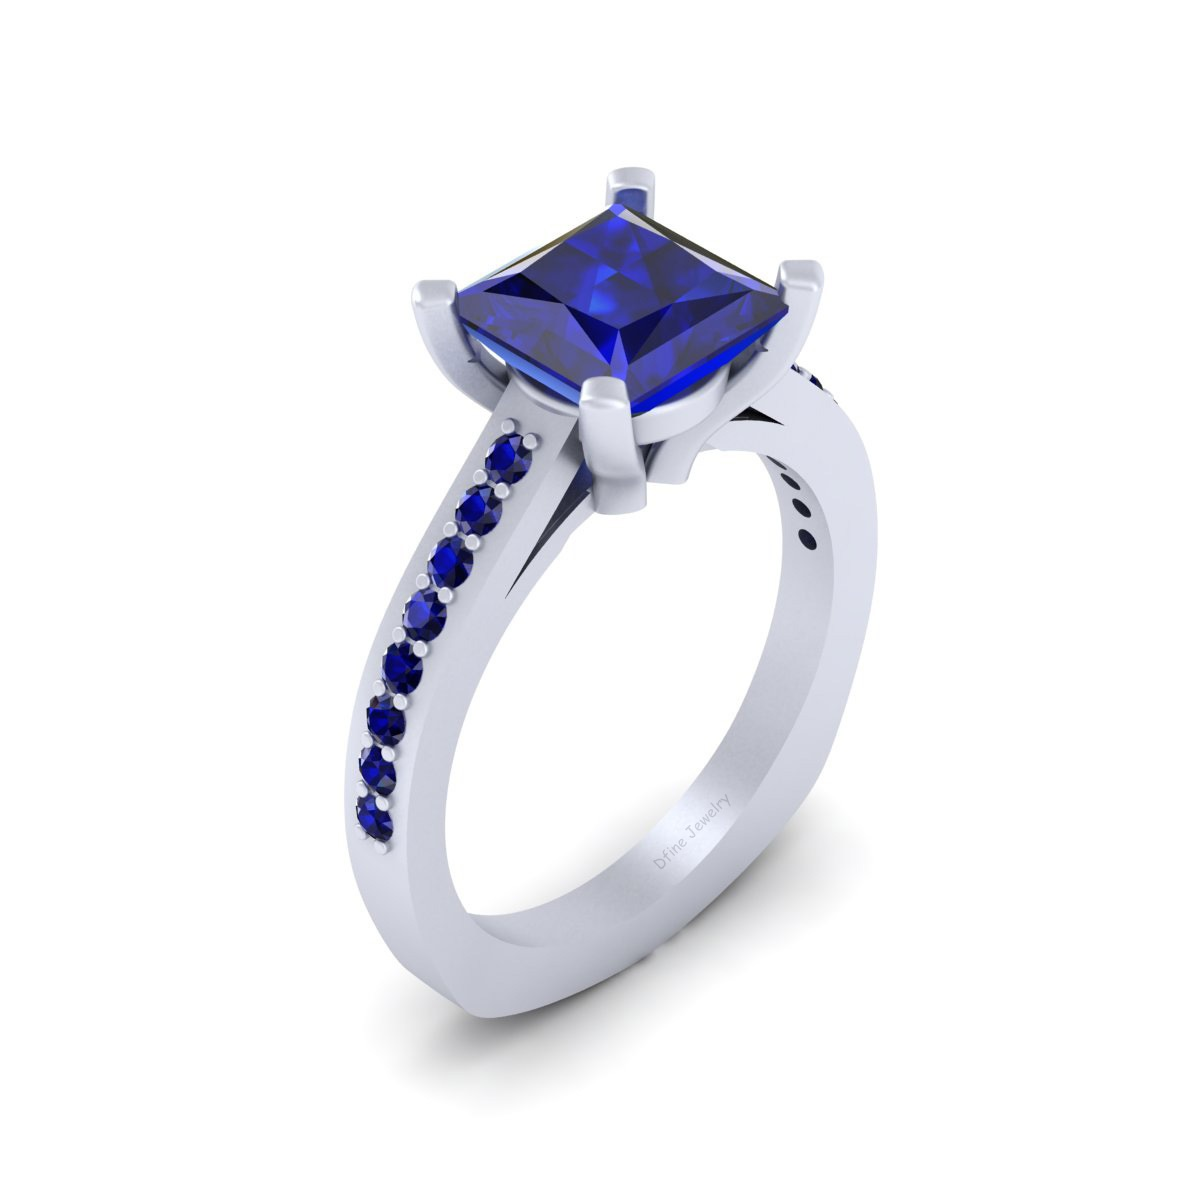 Robot Droid R2D2 Inspired Engagement Ring